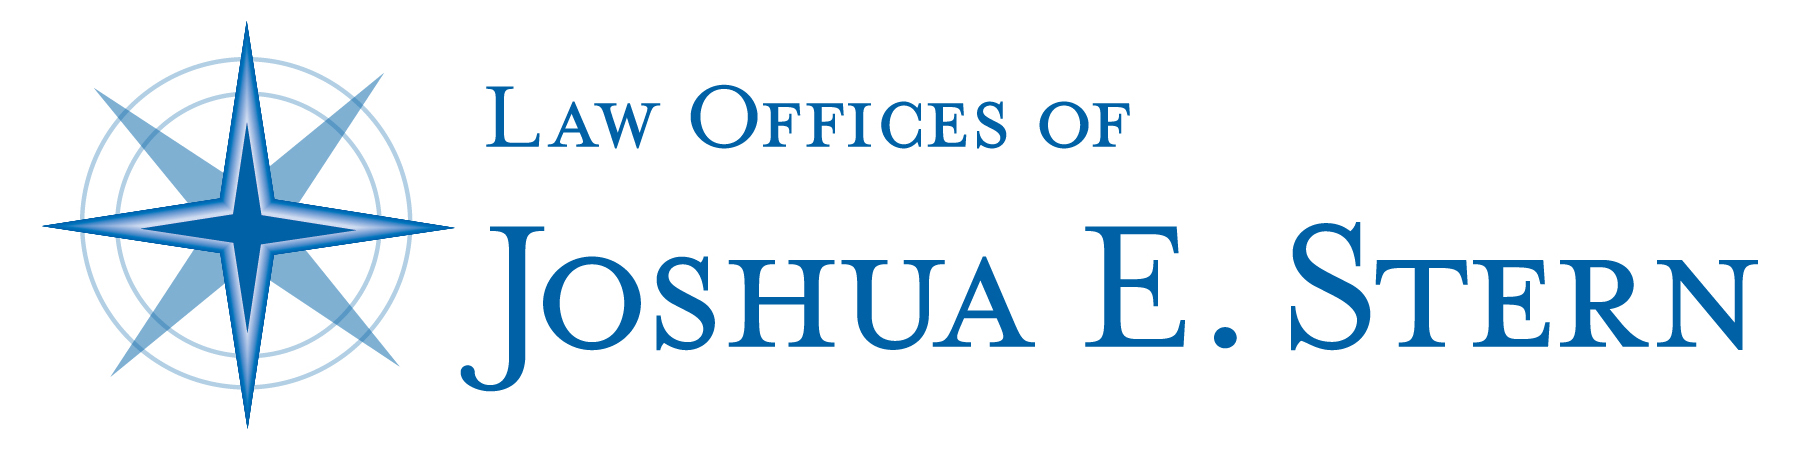 Law Offices of Joshua E. Stern Profile Picture